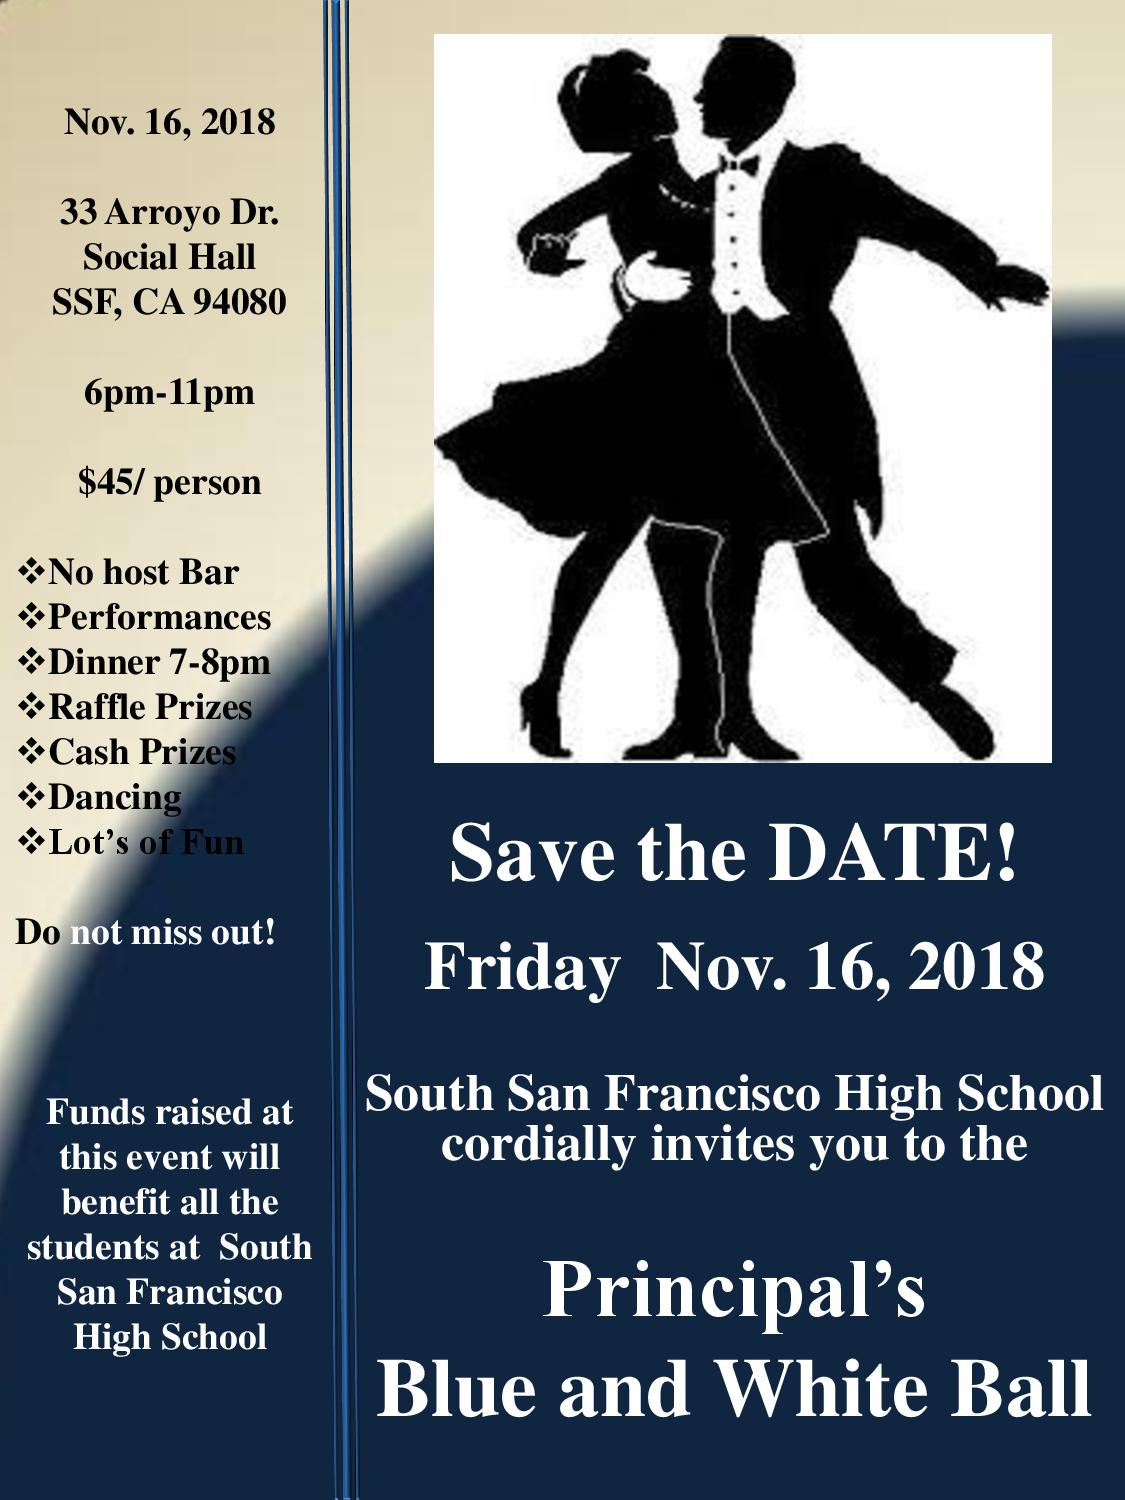 Save the Date!  SSFHS Principal's Blue and White Ball Friday November 16th